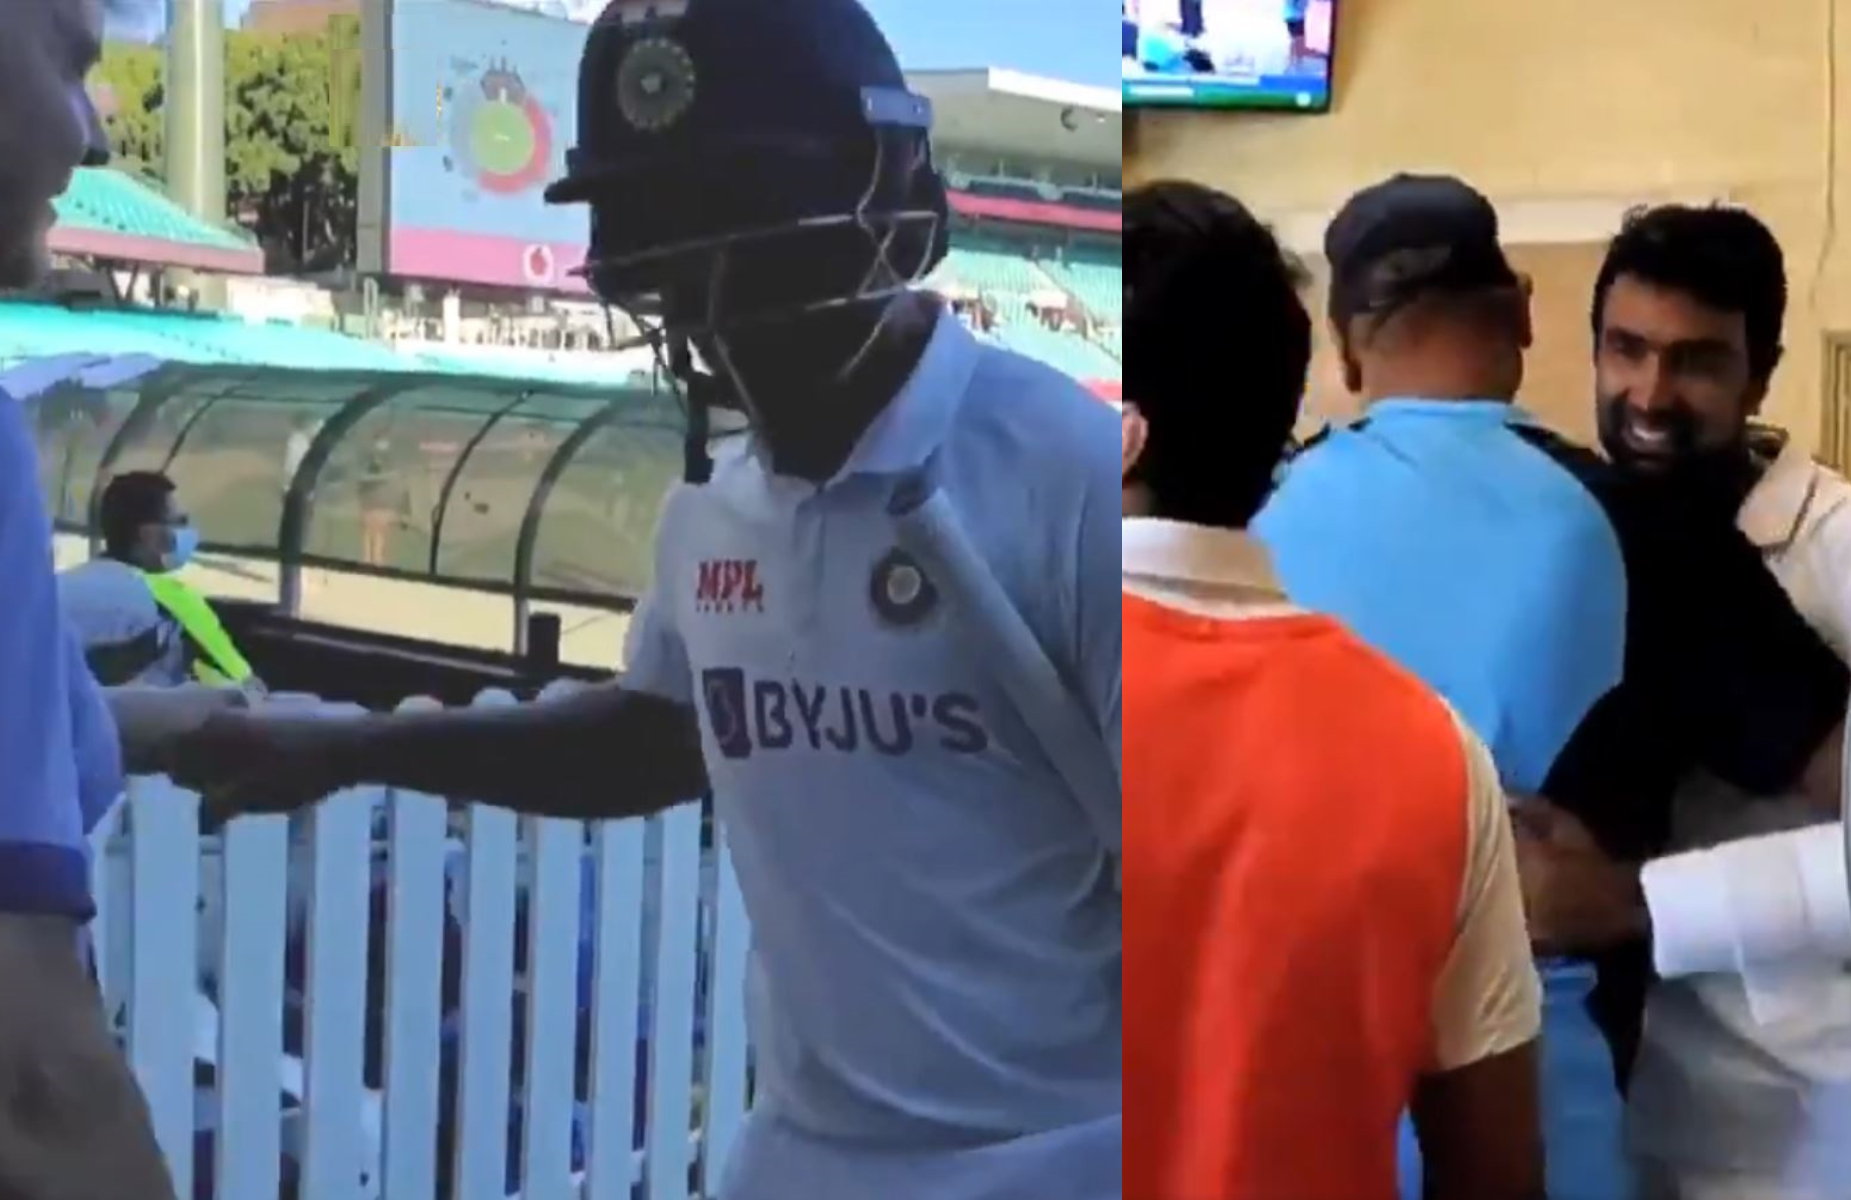 Vihari and Ashwin put on 62* runs in 258 balls at SCG to eek out a draw | BCCI Twitter